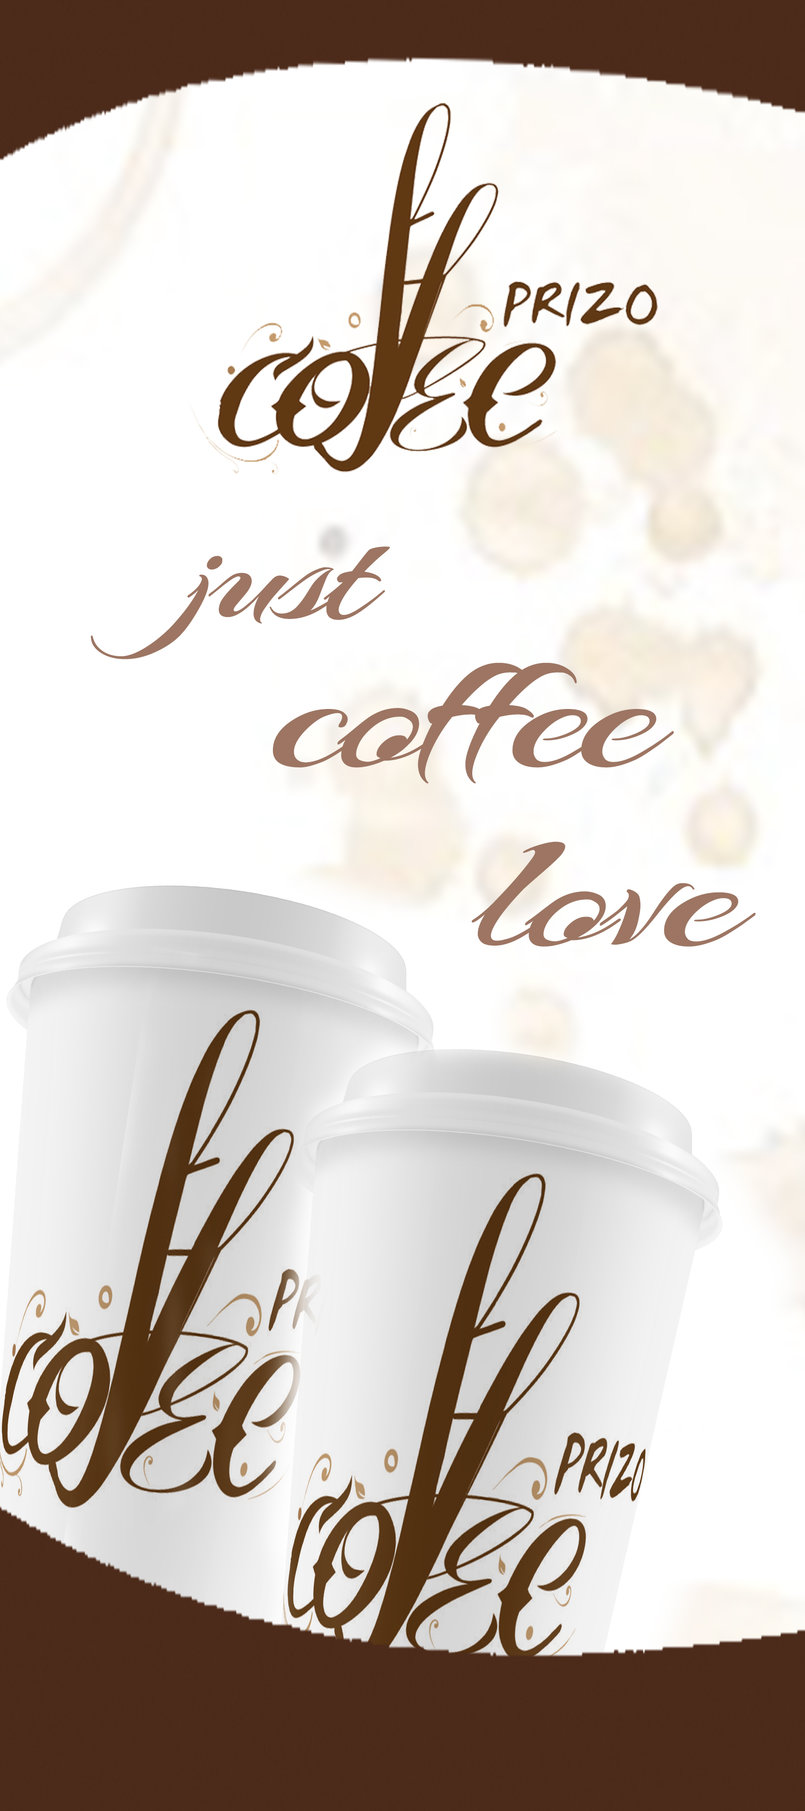 1 - logo coffee